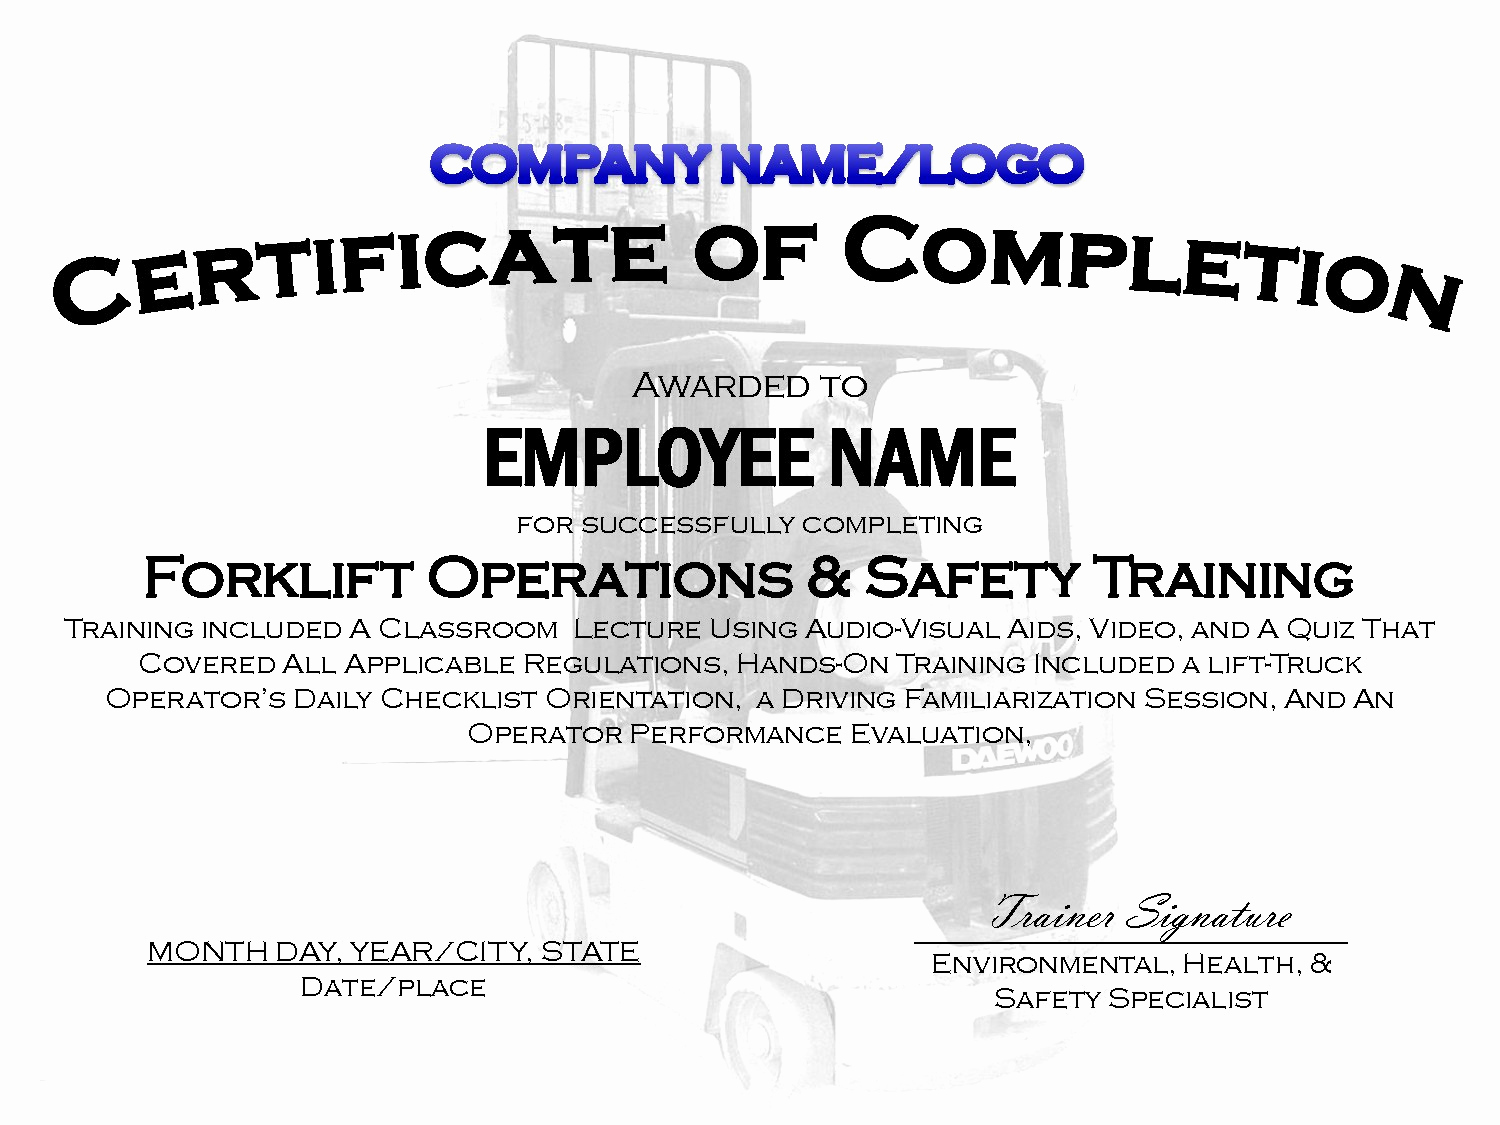 Forklift Training Certificate Template Beautiful forklift Certificate Template Free